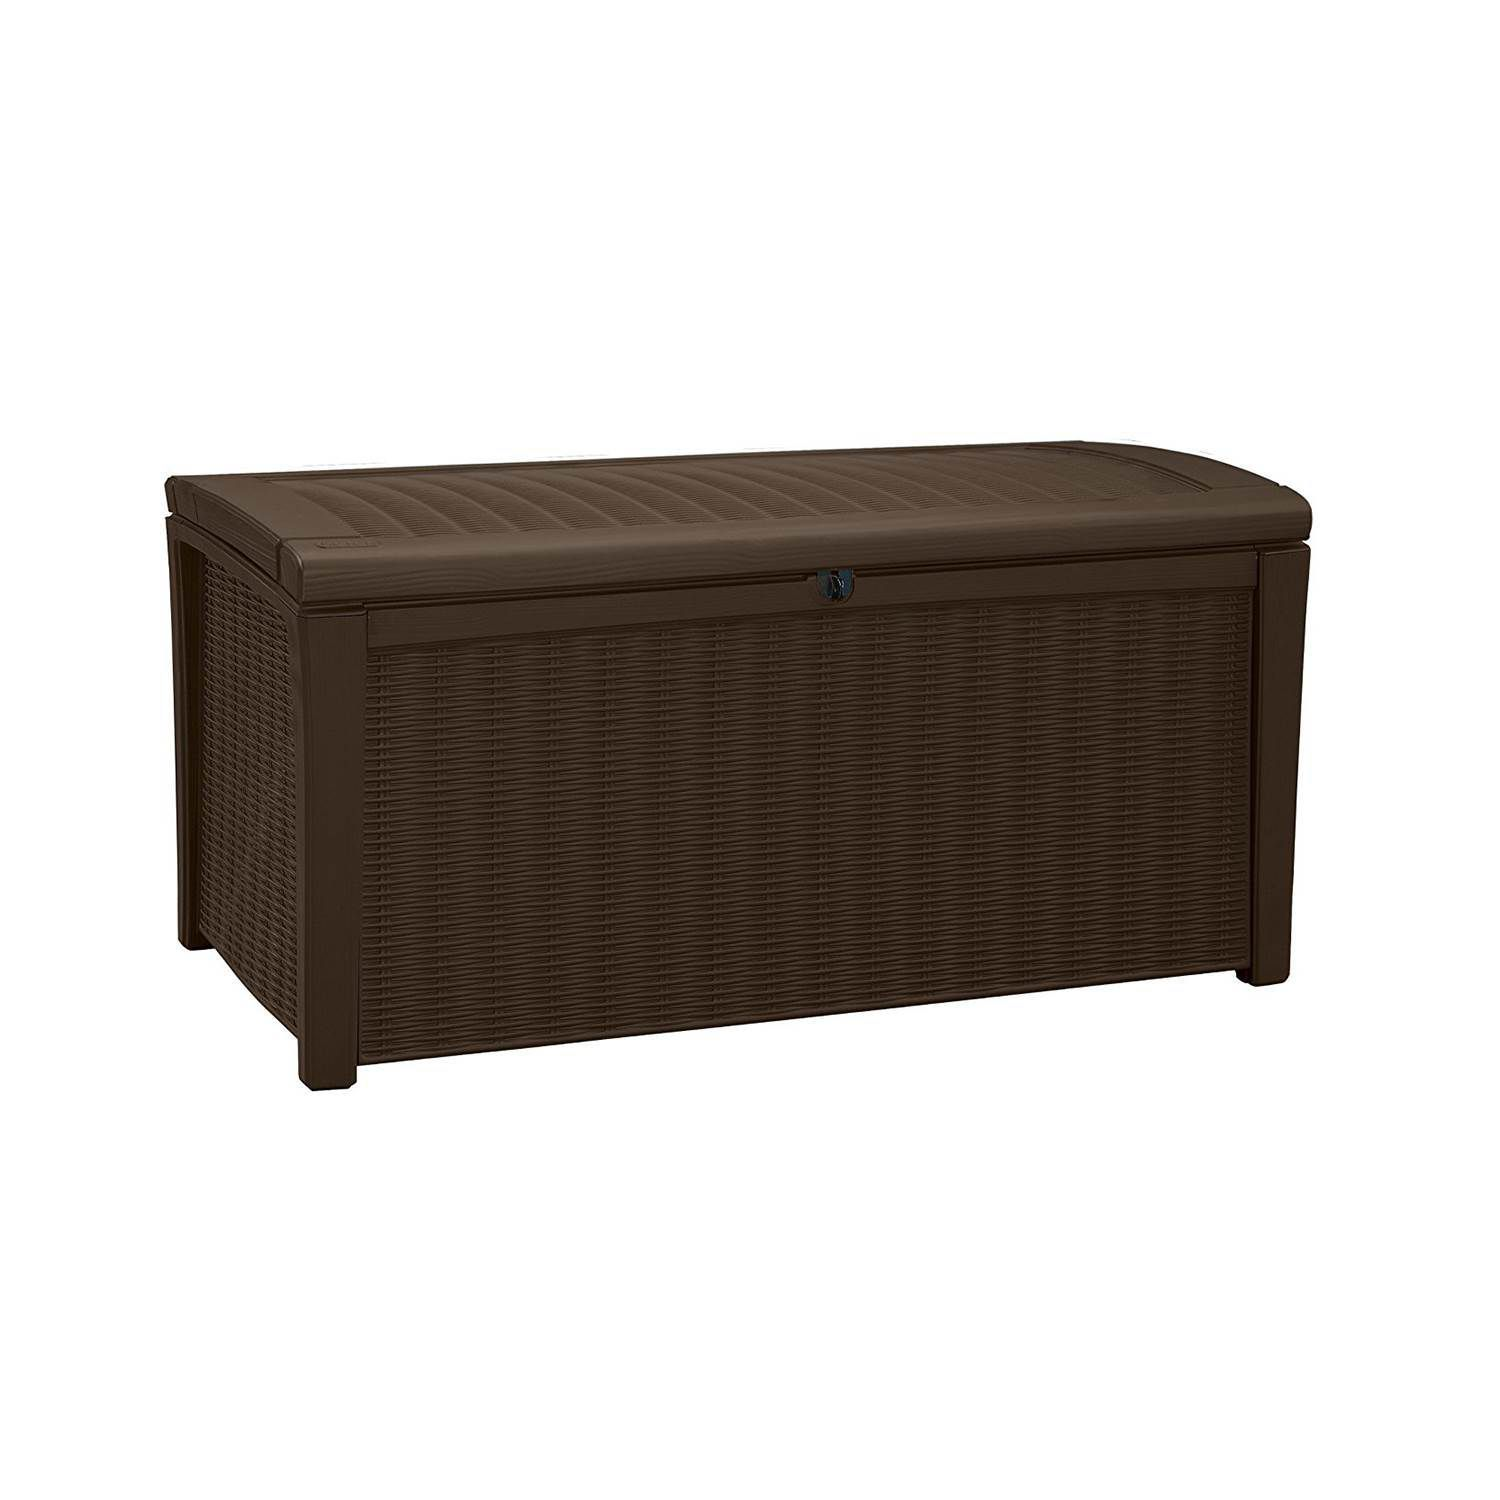 keter borneo 110 gallon rattan resin outdoor patio storage deck box and bench